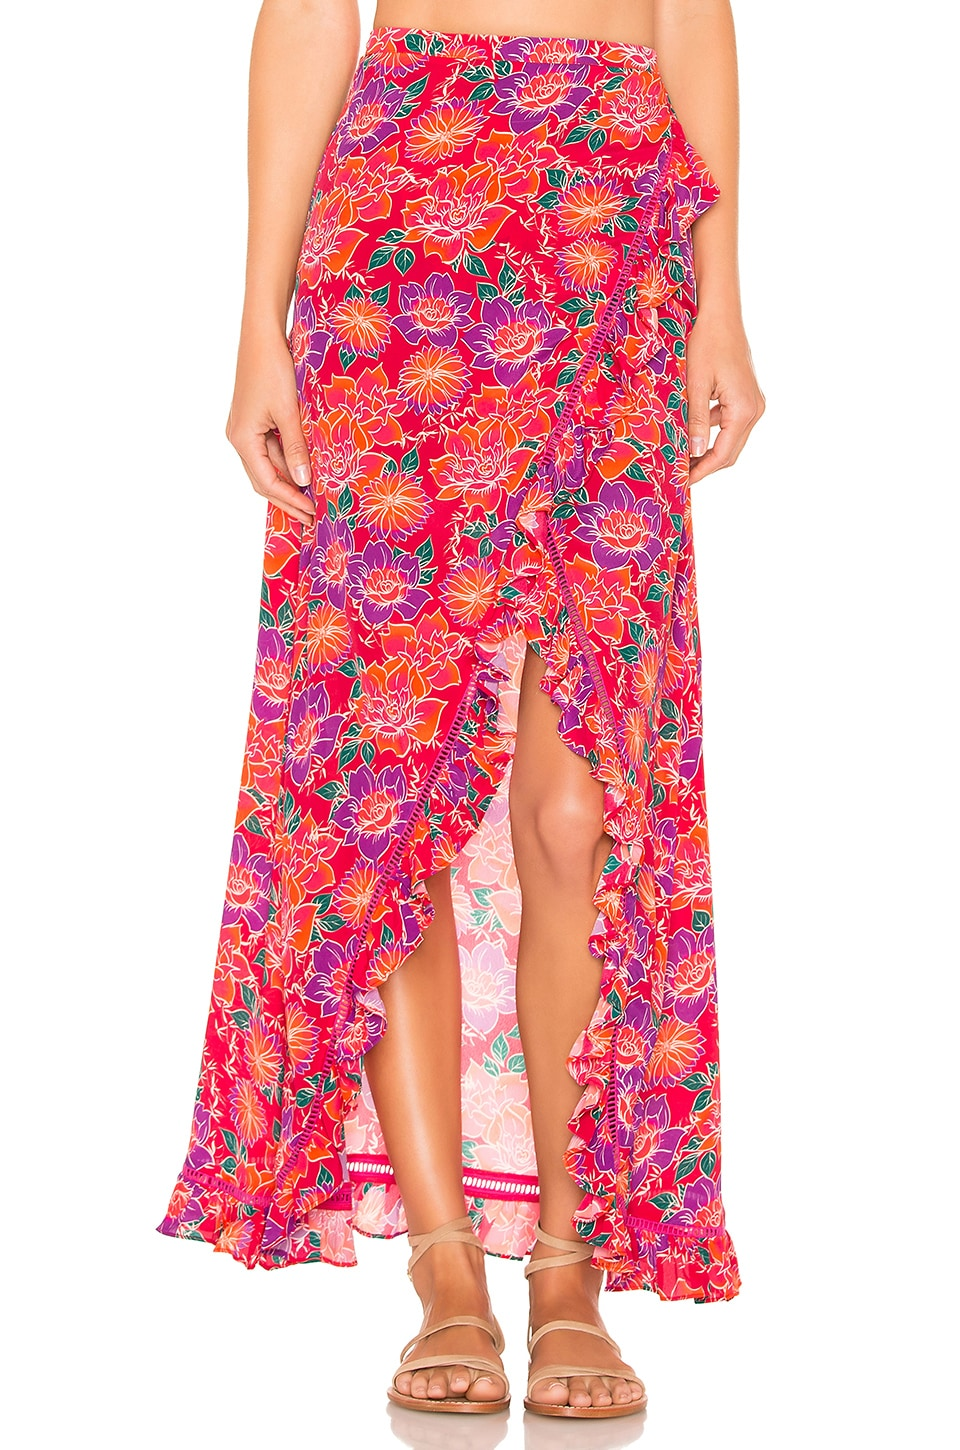 PALOMA BLUE Stevie Floral Silk-Blend Wrap Skirt in Red